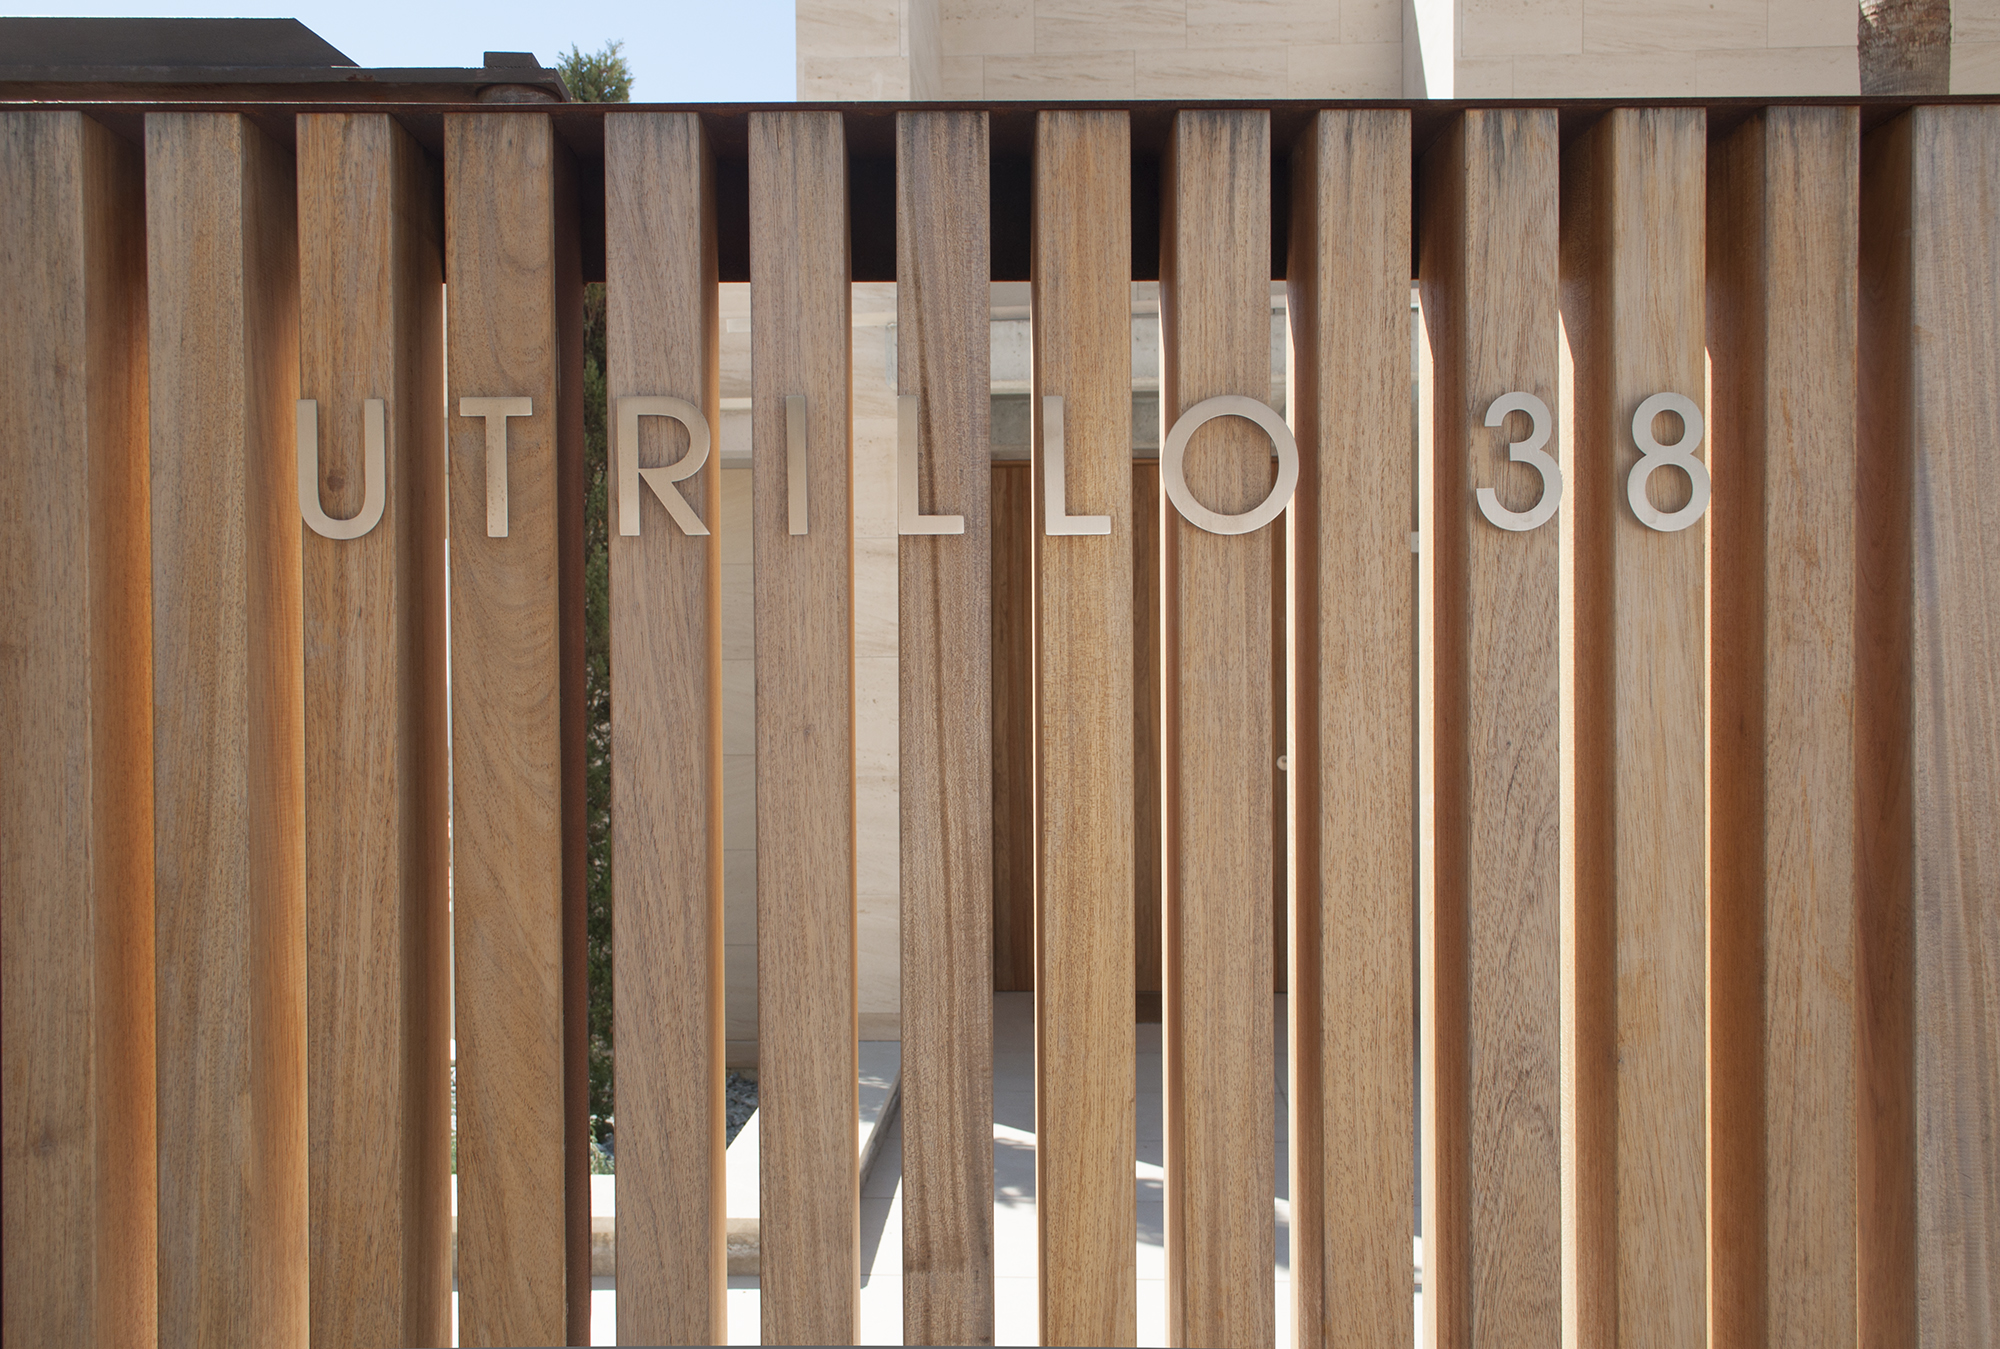 2-rardo-architects-houses-sitges-elevation-entrance-wood-fence